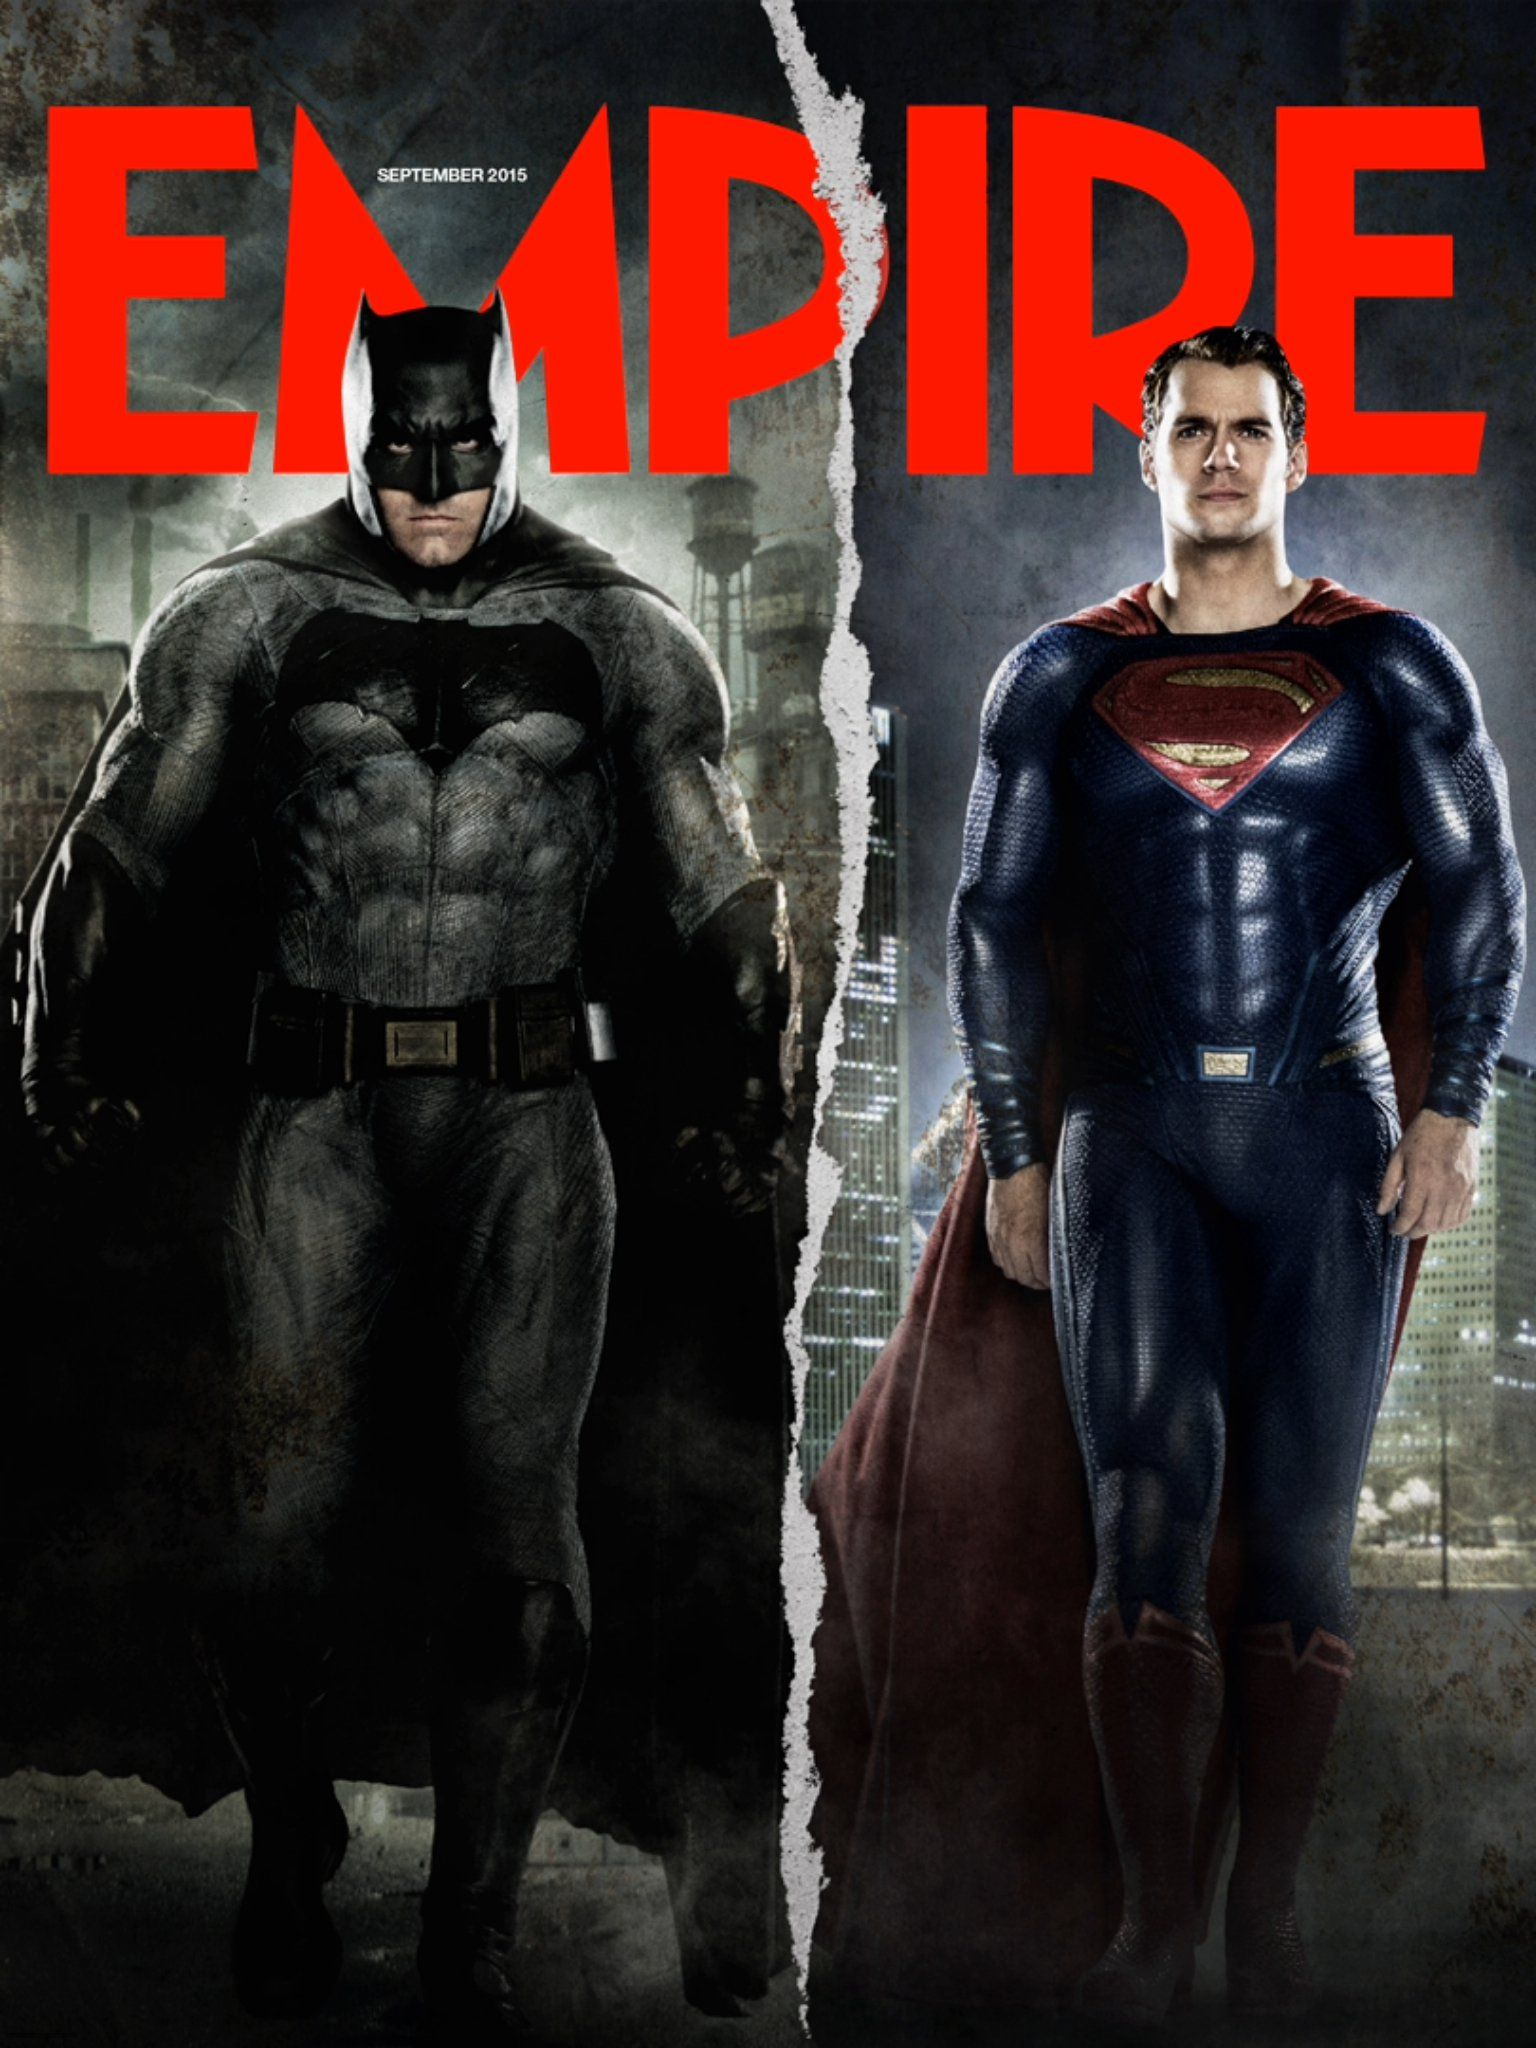 Batman vs superman images feature bruce wayne and clark - Super batman movie ...